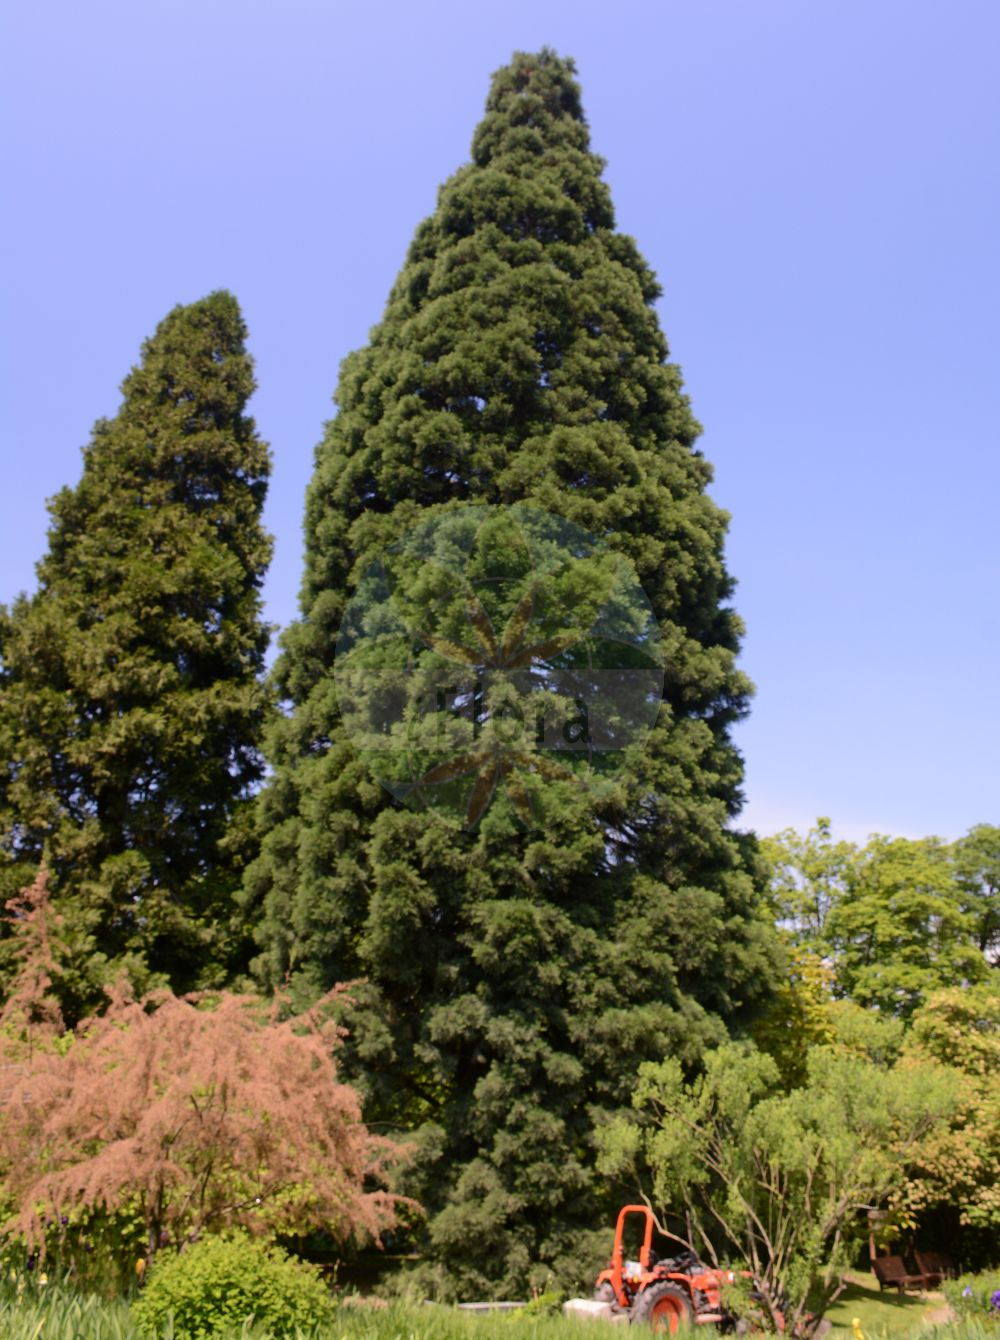 Foto von Sequoiadendron giganteum (Riesenmammutbaum - Wellingtonia). Das Foto wurde in Linz, Oberoesterreich, Österreich aufgenommen. ---- Photo of Sequoiadendron giganteum (Riesenmammutbaum - Wellingtonia).The picture was taken in Linz, Upper Austria, Austria.(Sequoiadendron giganteum,Riesenmammutbaum,Wellingtonia,Wellingtonia gigantea,Big Tree,Giant Redwood,Giant Sequoia,Mammoth Tree,Sierra Redwood,Sequoiadendron,Riesenmammutbaum,Sequoia,Cupressaceae,Zypressengewaechse,Cypress family)